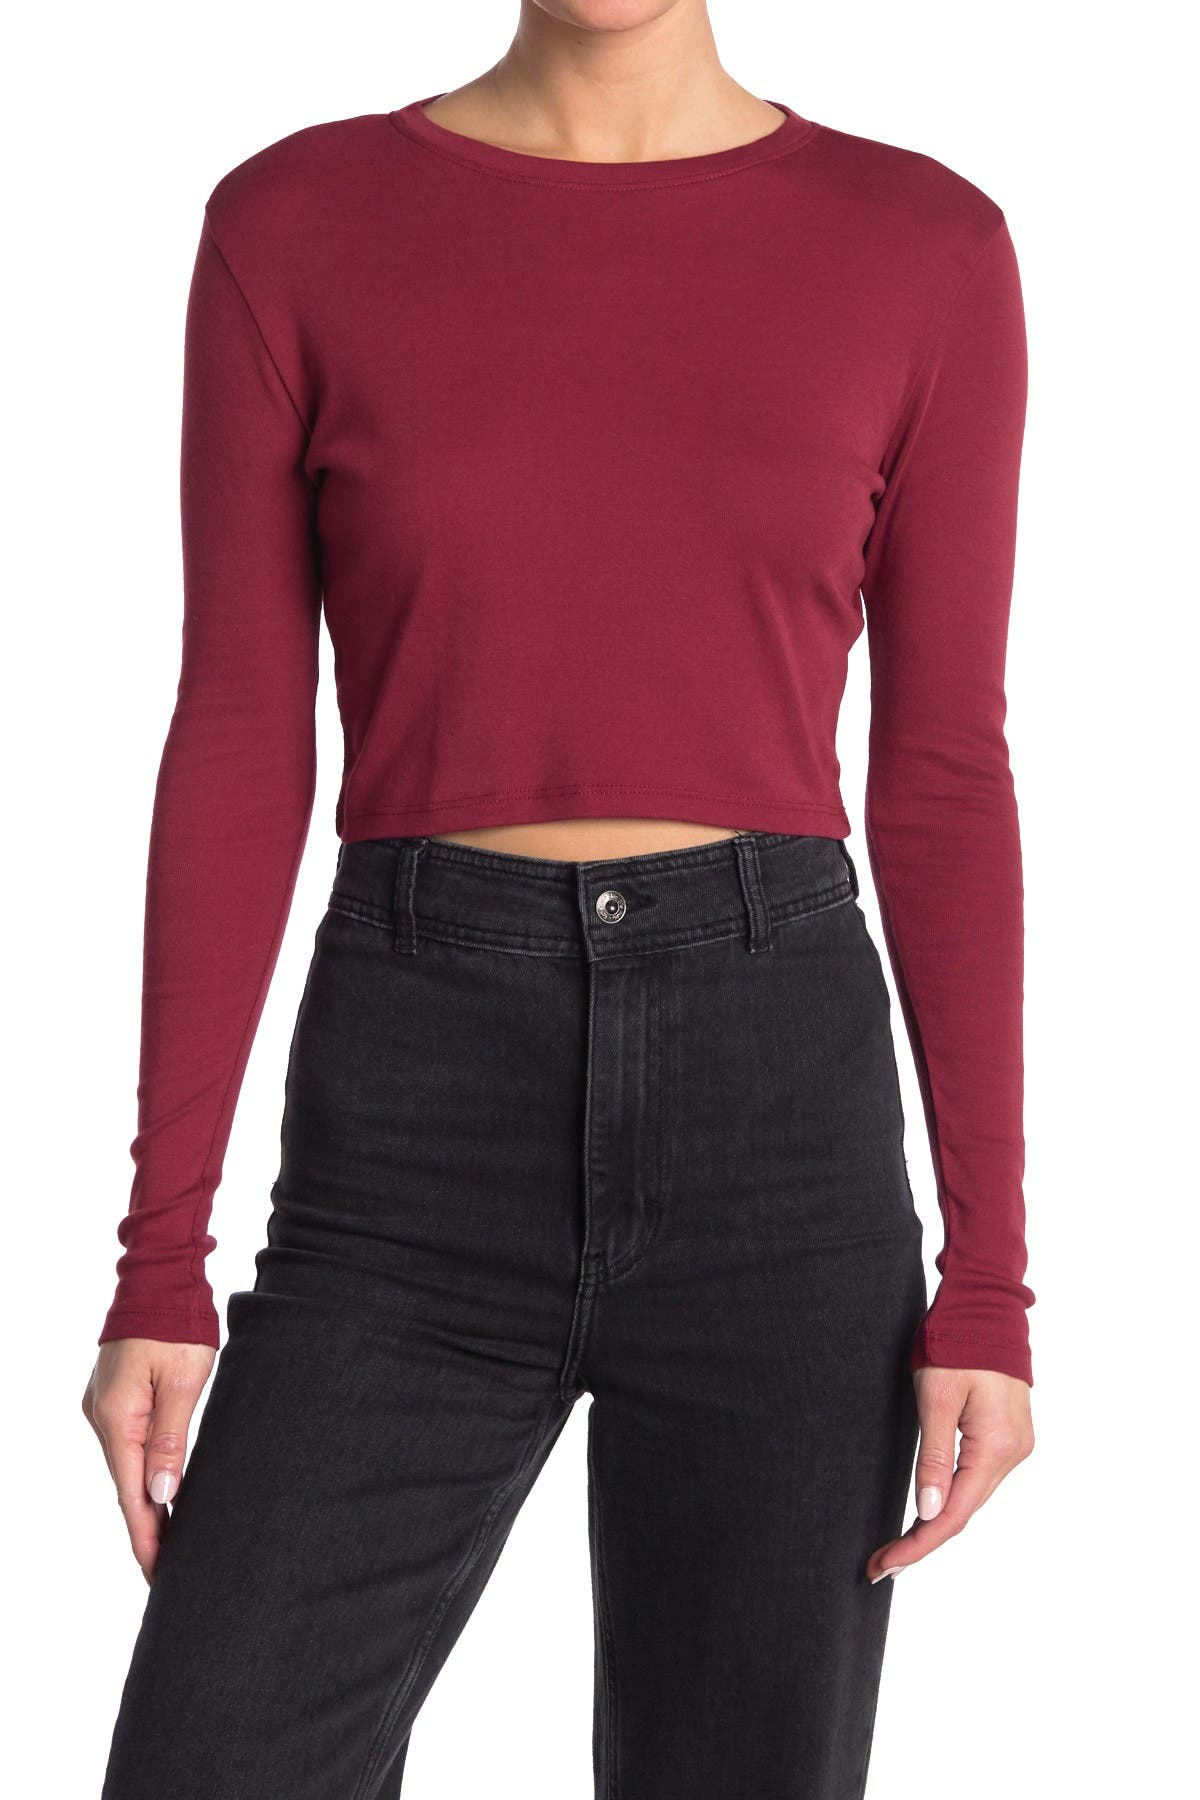 Image of Abound Cropped Long Sleeve Top